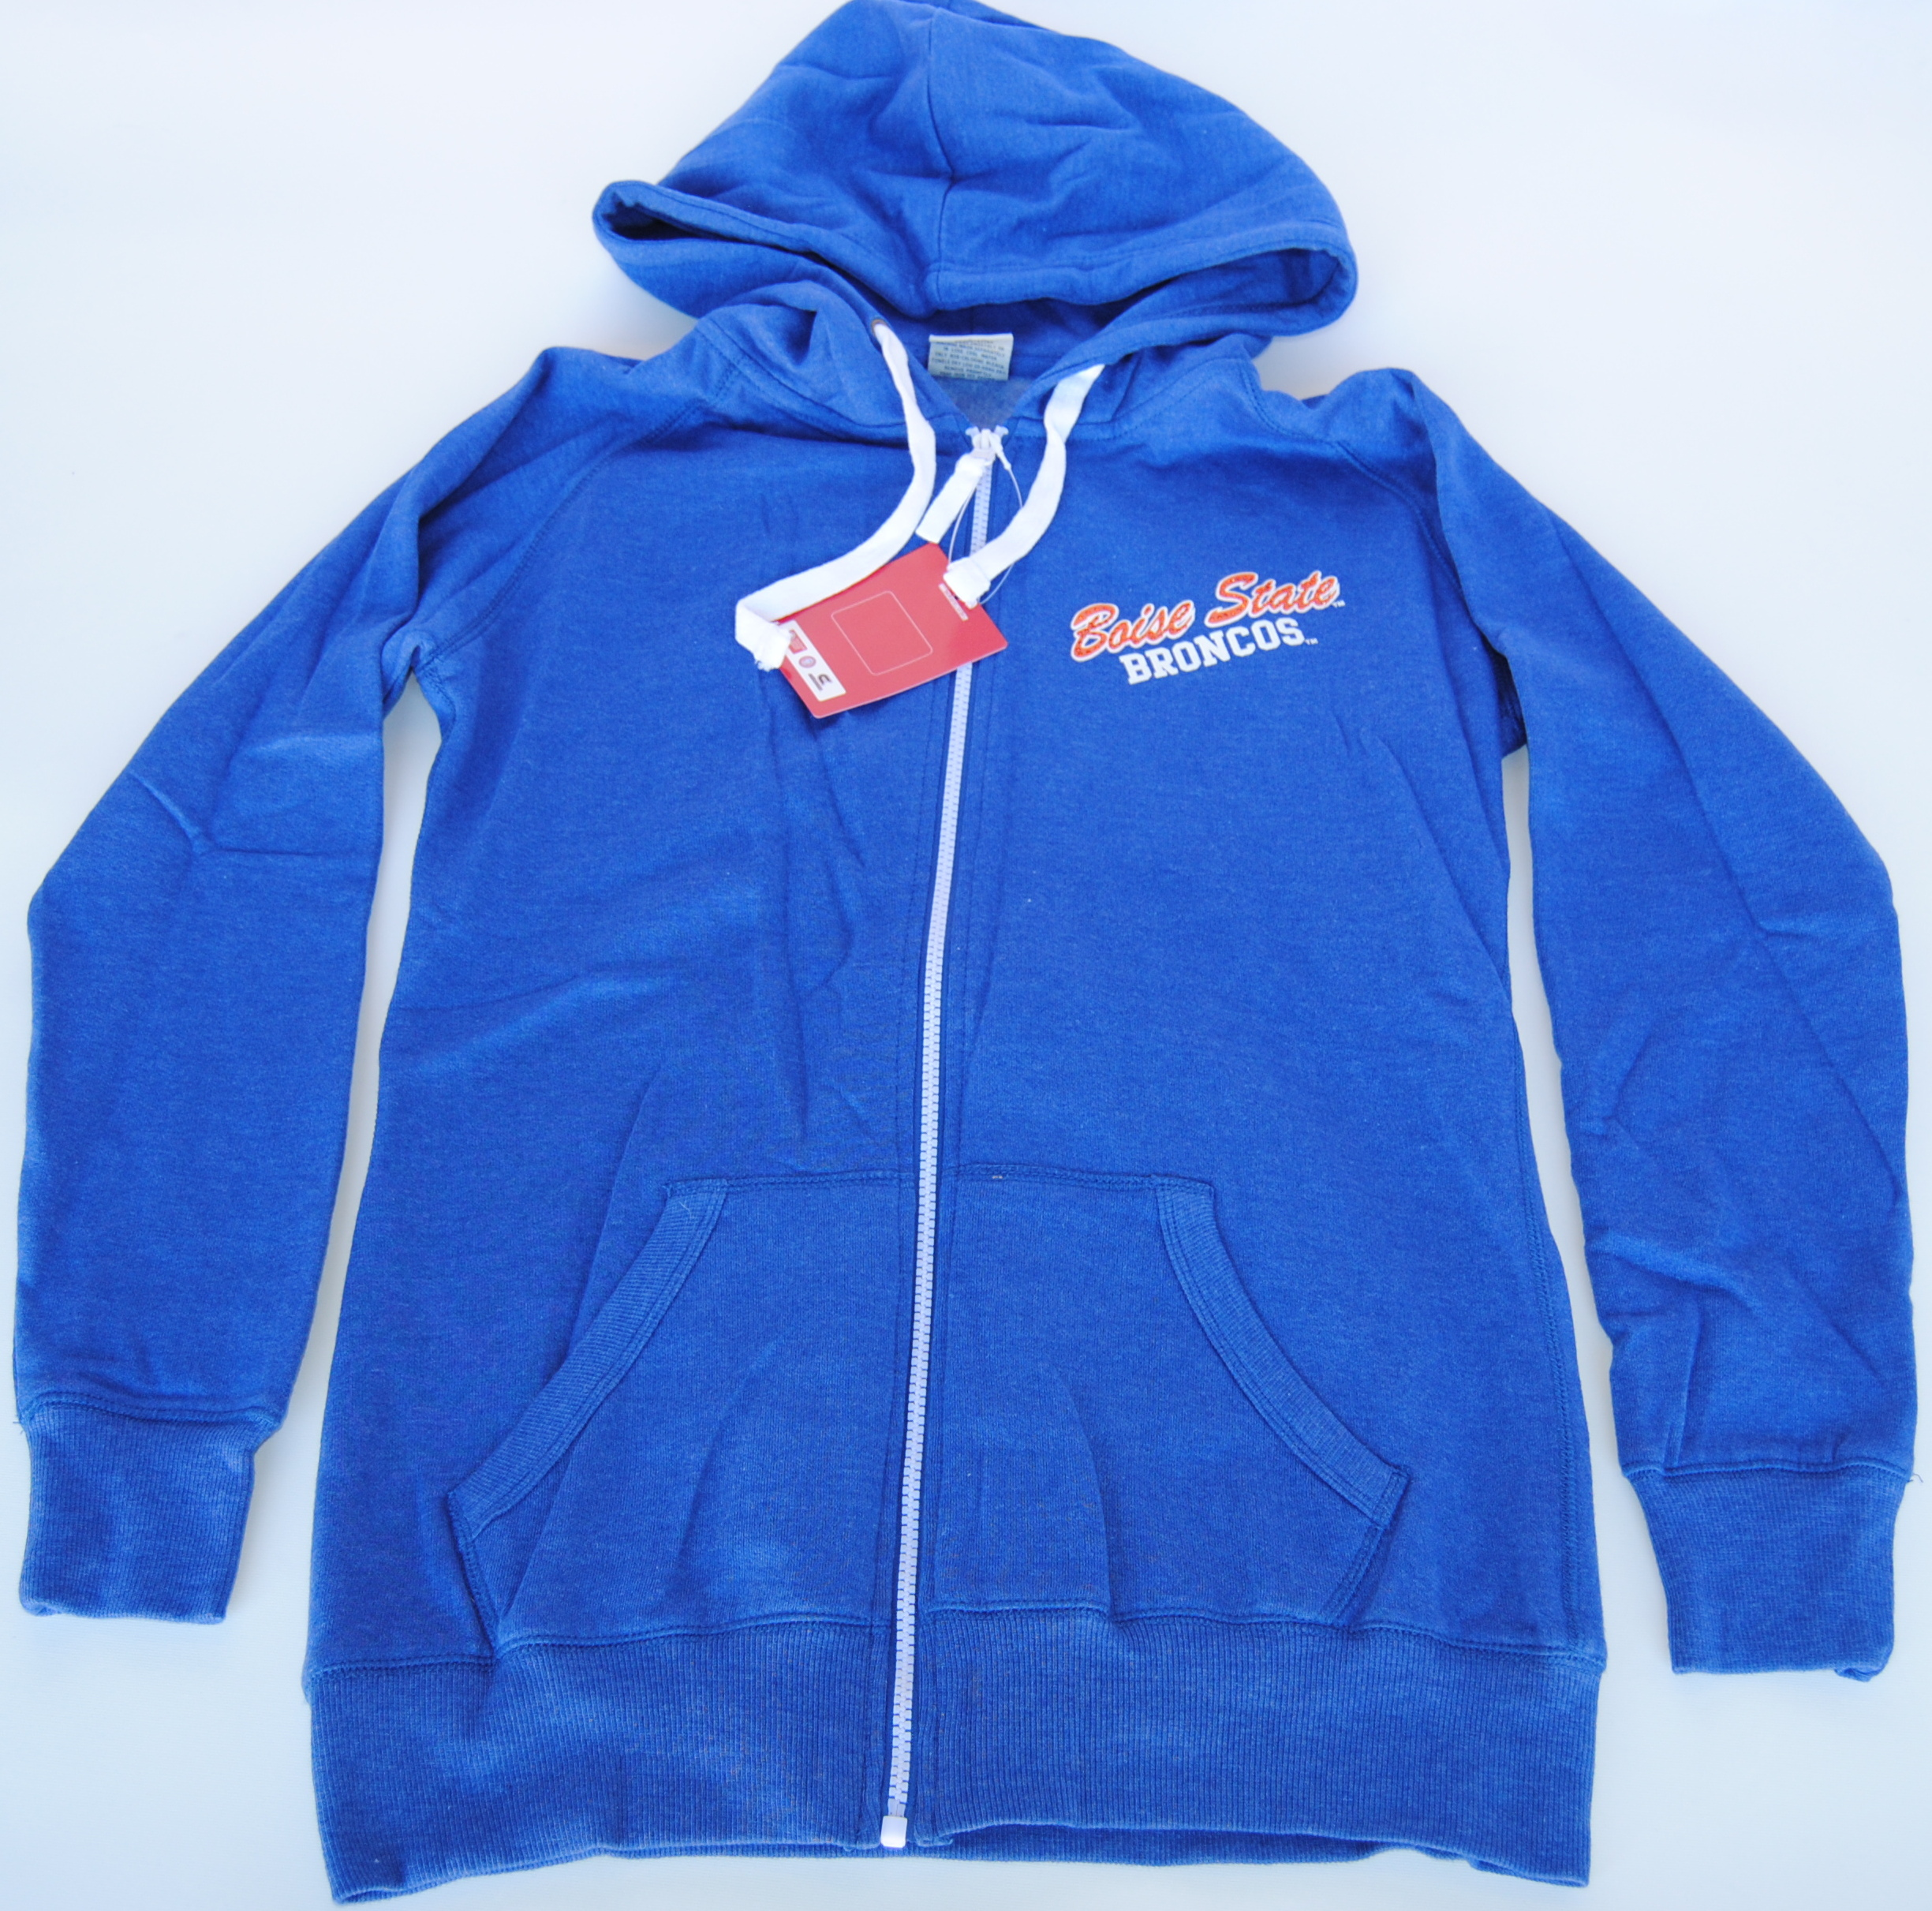 Colosseum Athletics Boise State Broncos Colosseum Blue Womens Rhinestone Zip Front Jacket (M) at Sears.com